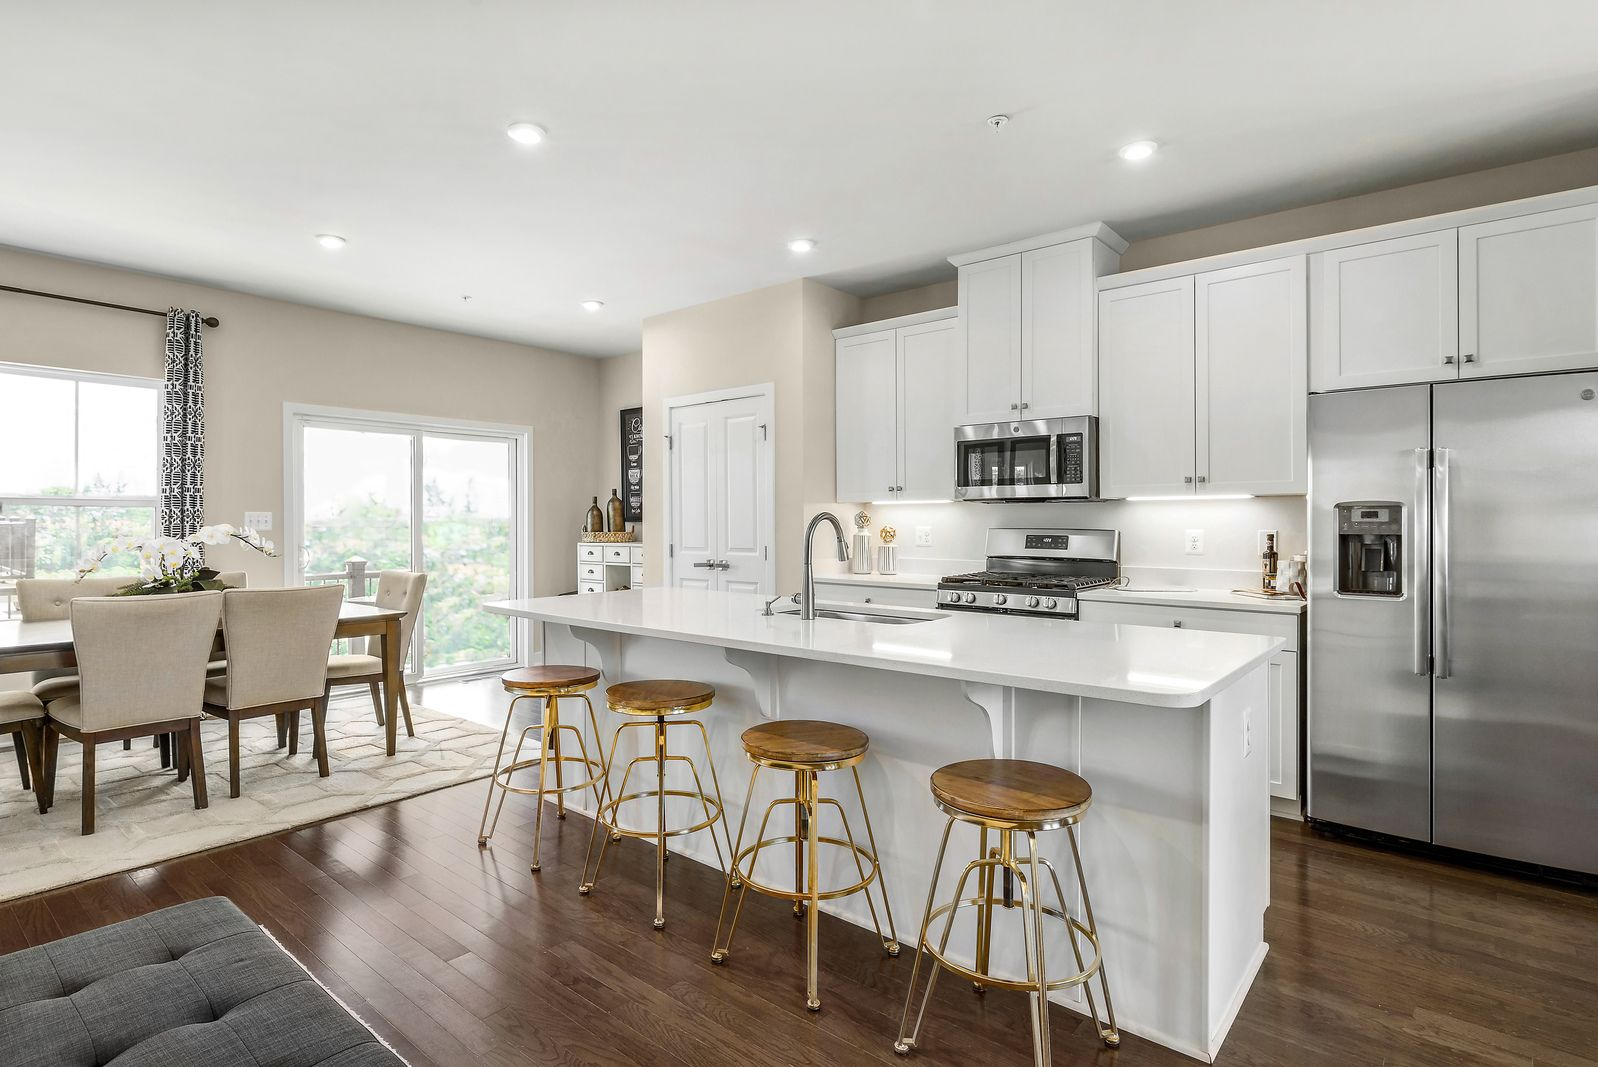 Welcome to Benn's Grant:Settle into this highly sought-after townhome community offering amenities, low taxes & easy commutes to local bases!Schedule a visittoday to learn how you can purchase your new home at $279,990!